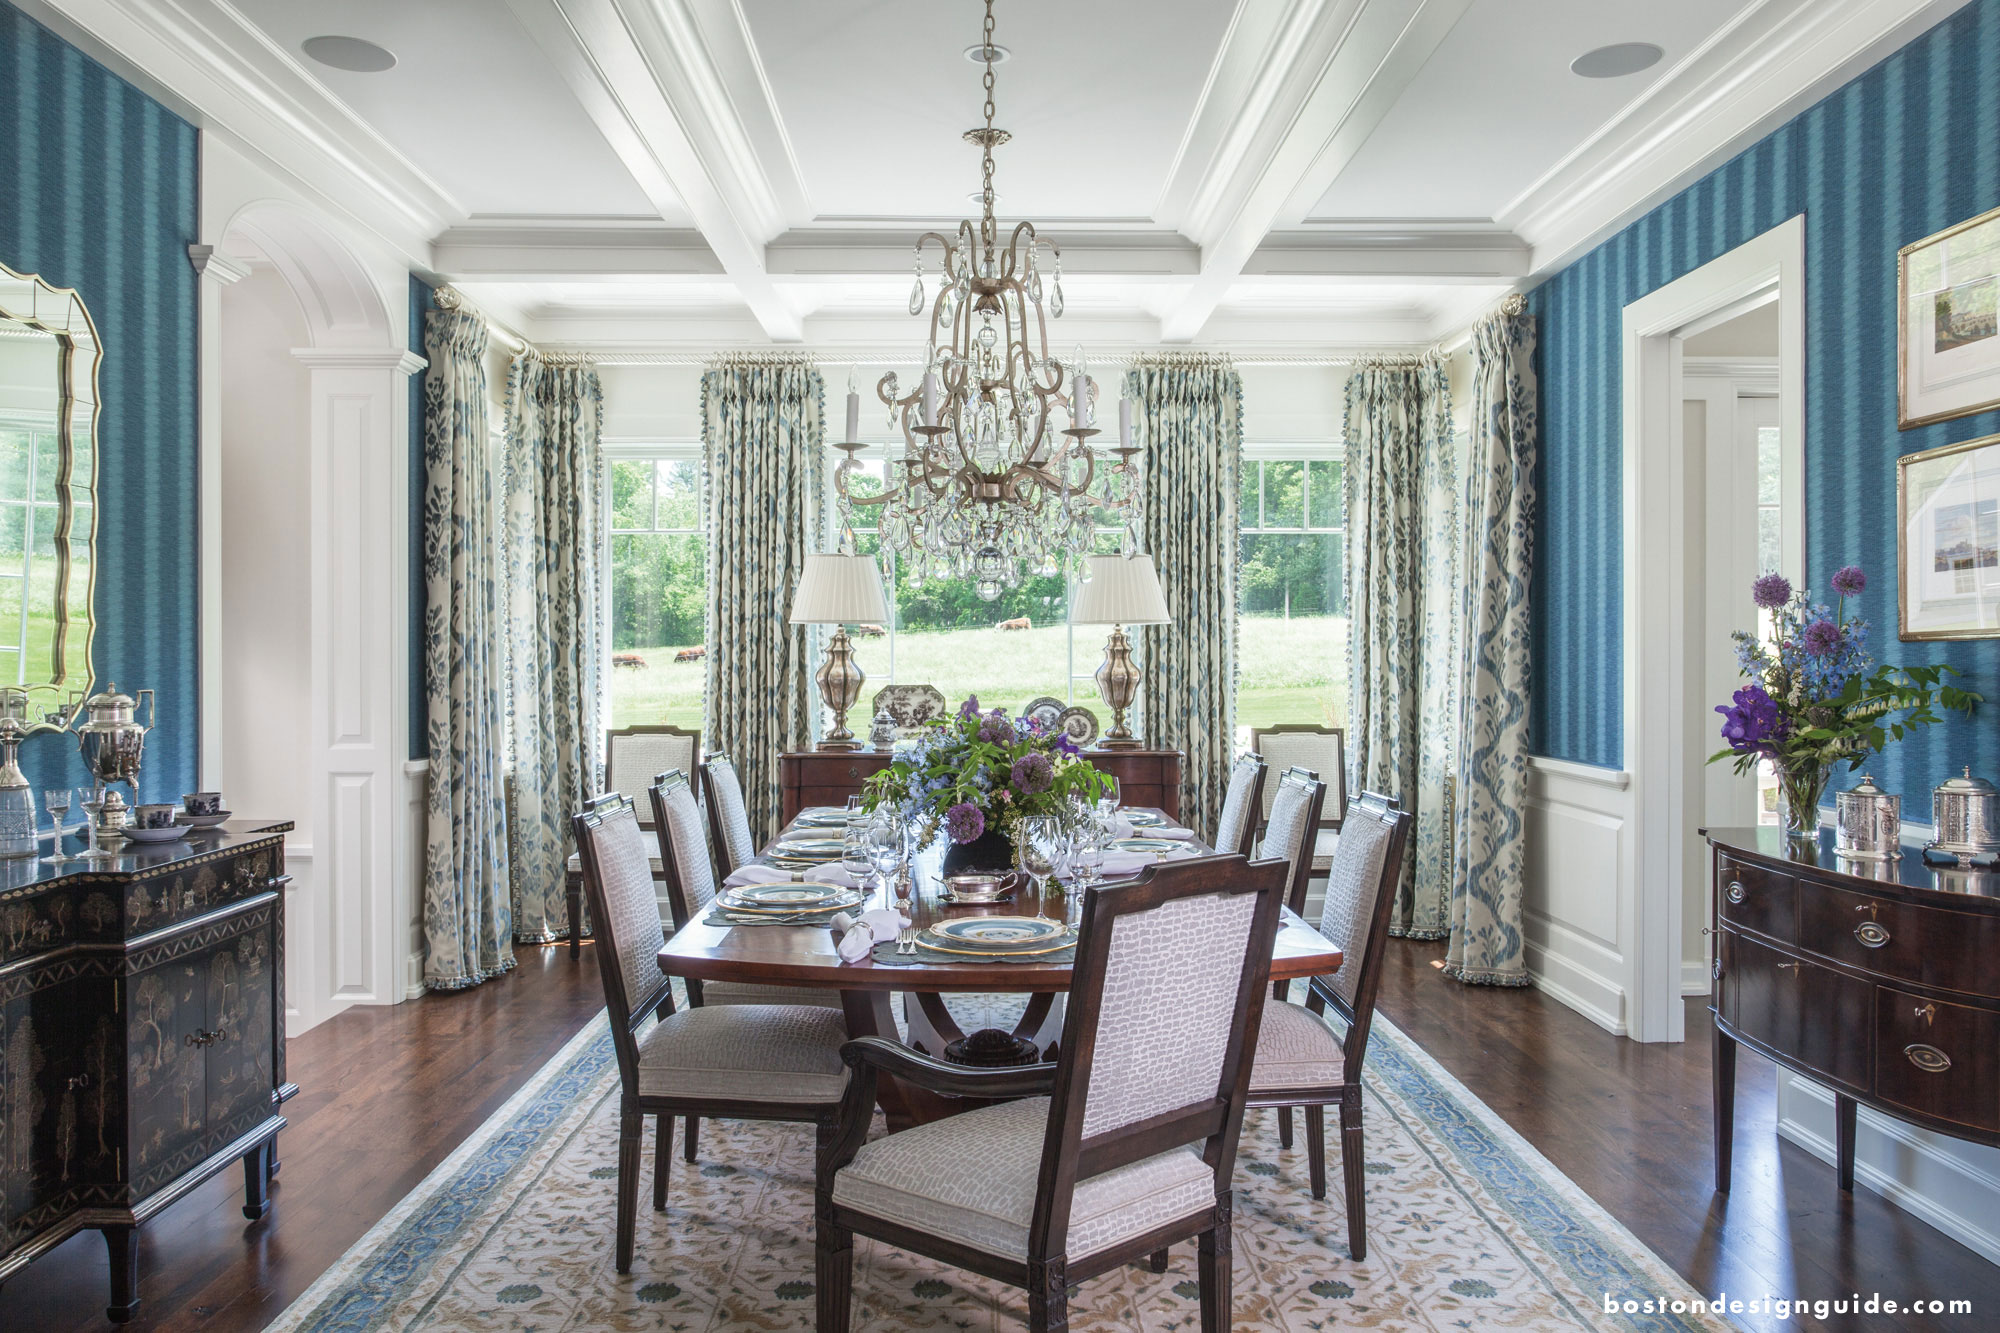 A lavish blue dining room design